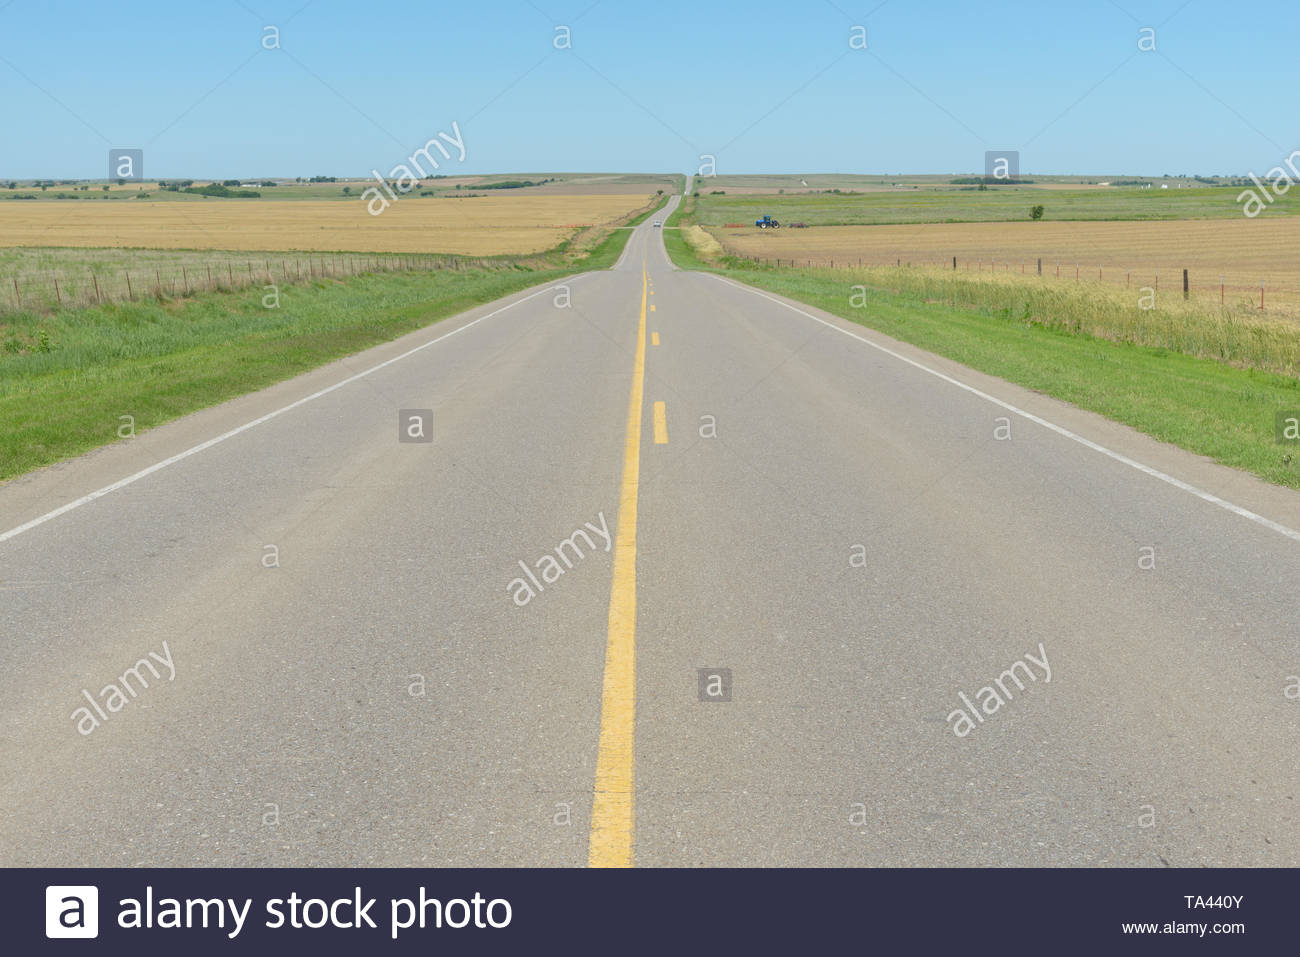 A straight highway runs through wheat fields and agriculture of the Great Plains state of Oklahoma. Stock Photo